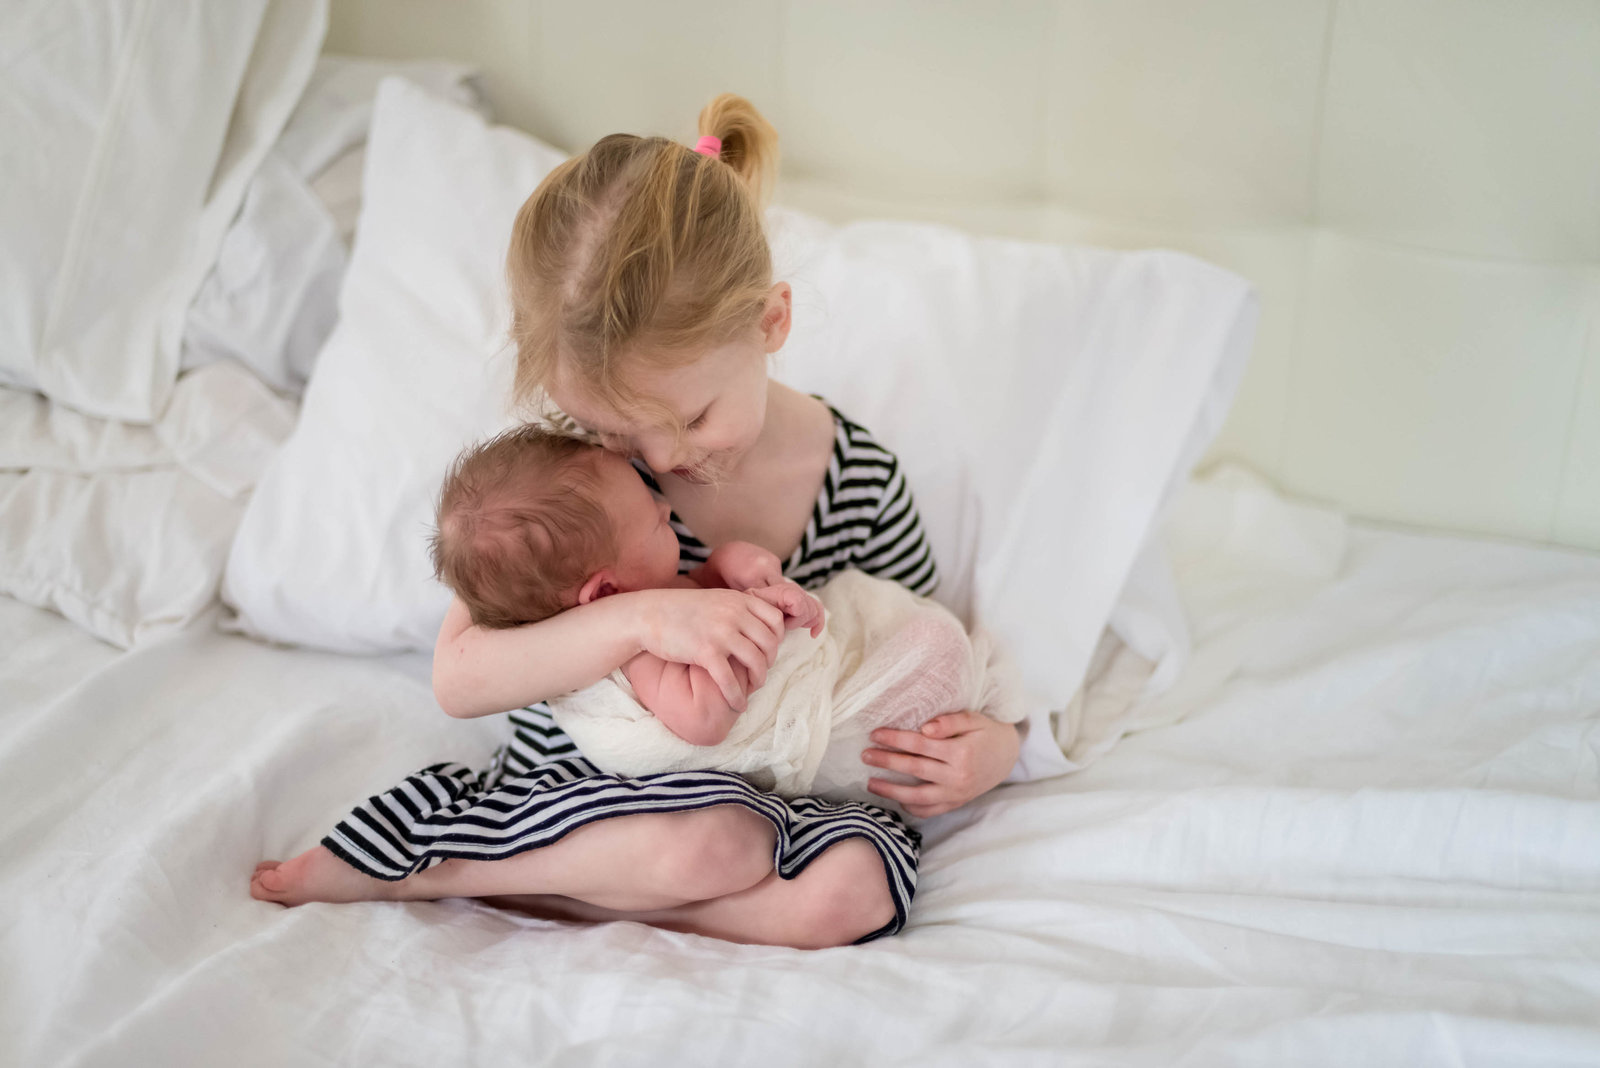 Boston-Newborn-Photographer-Lifestyle-Documentary-Home-Styled-Session-335